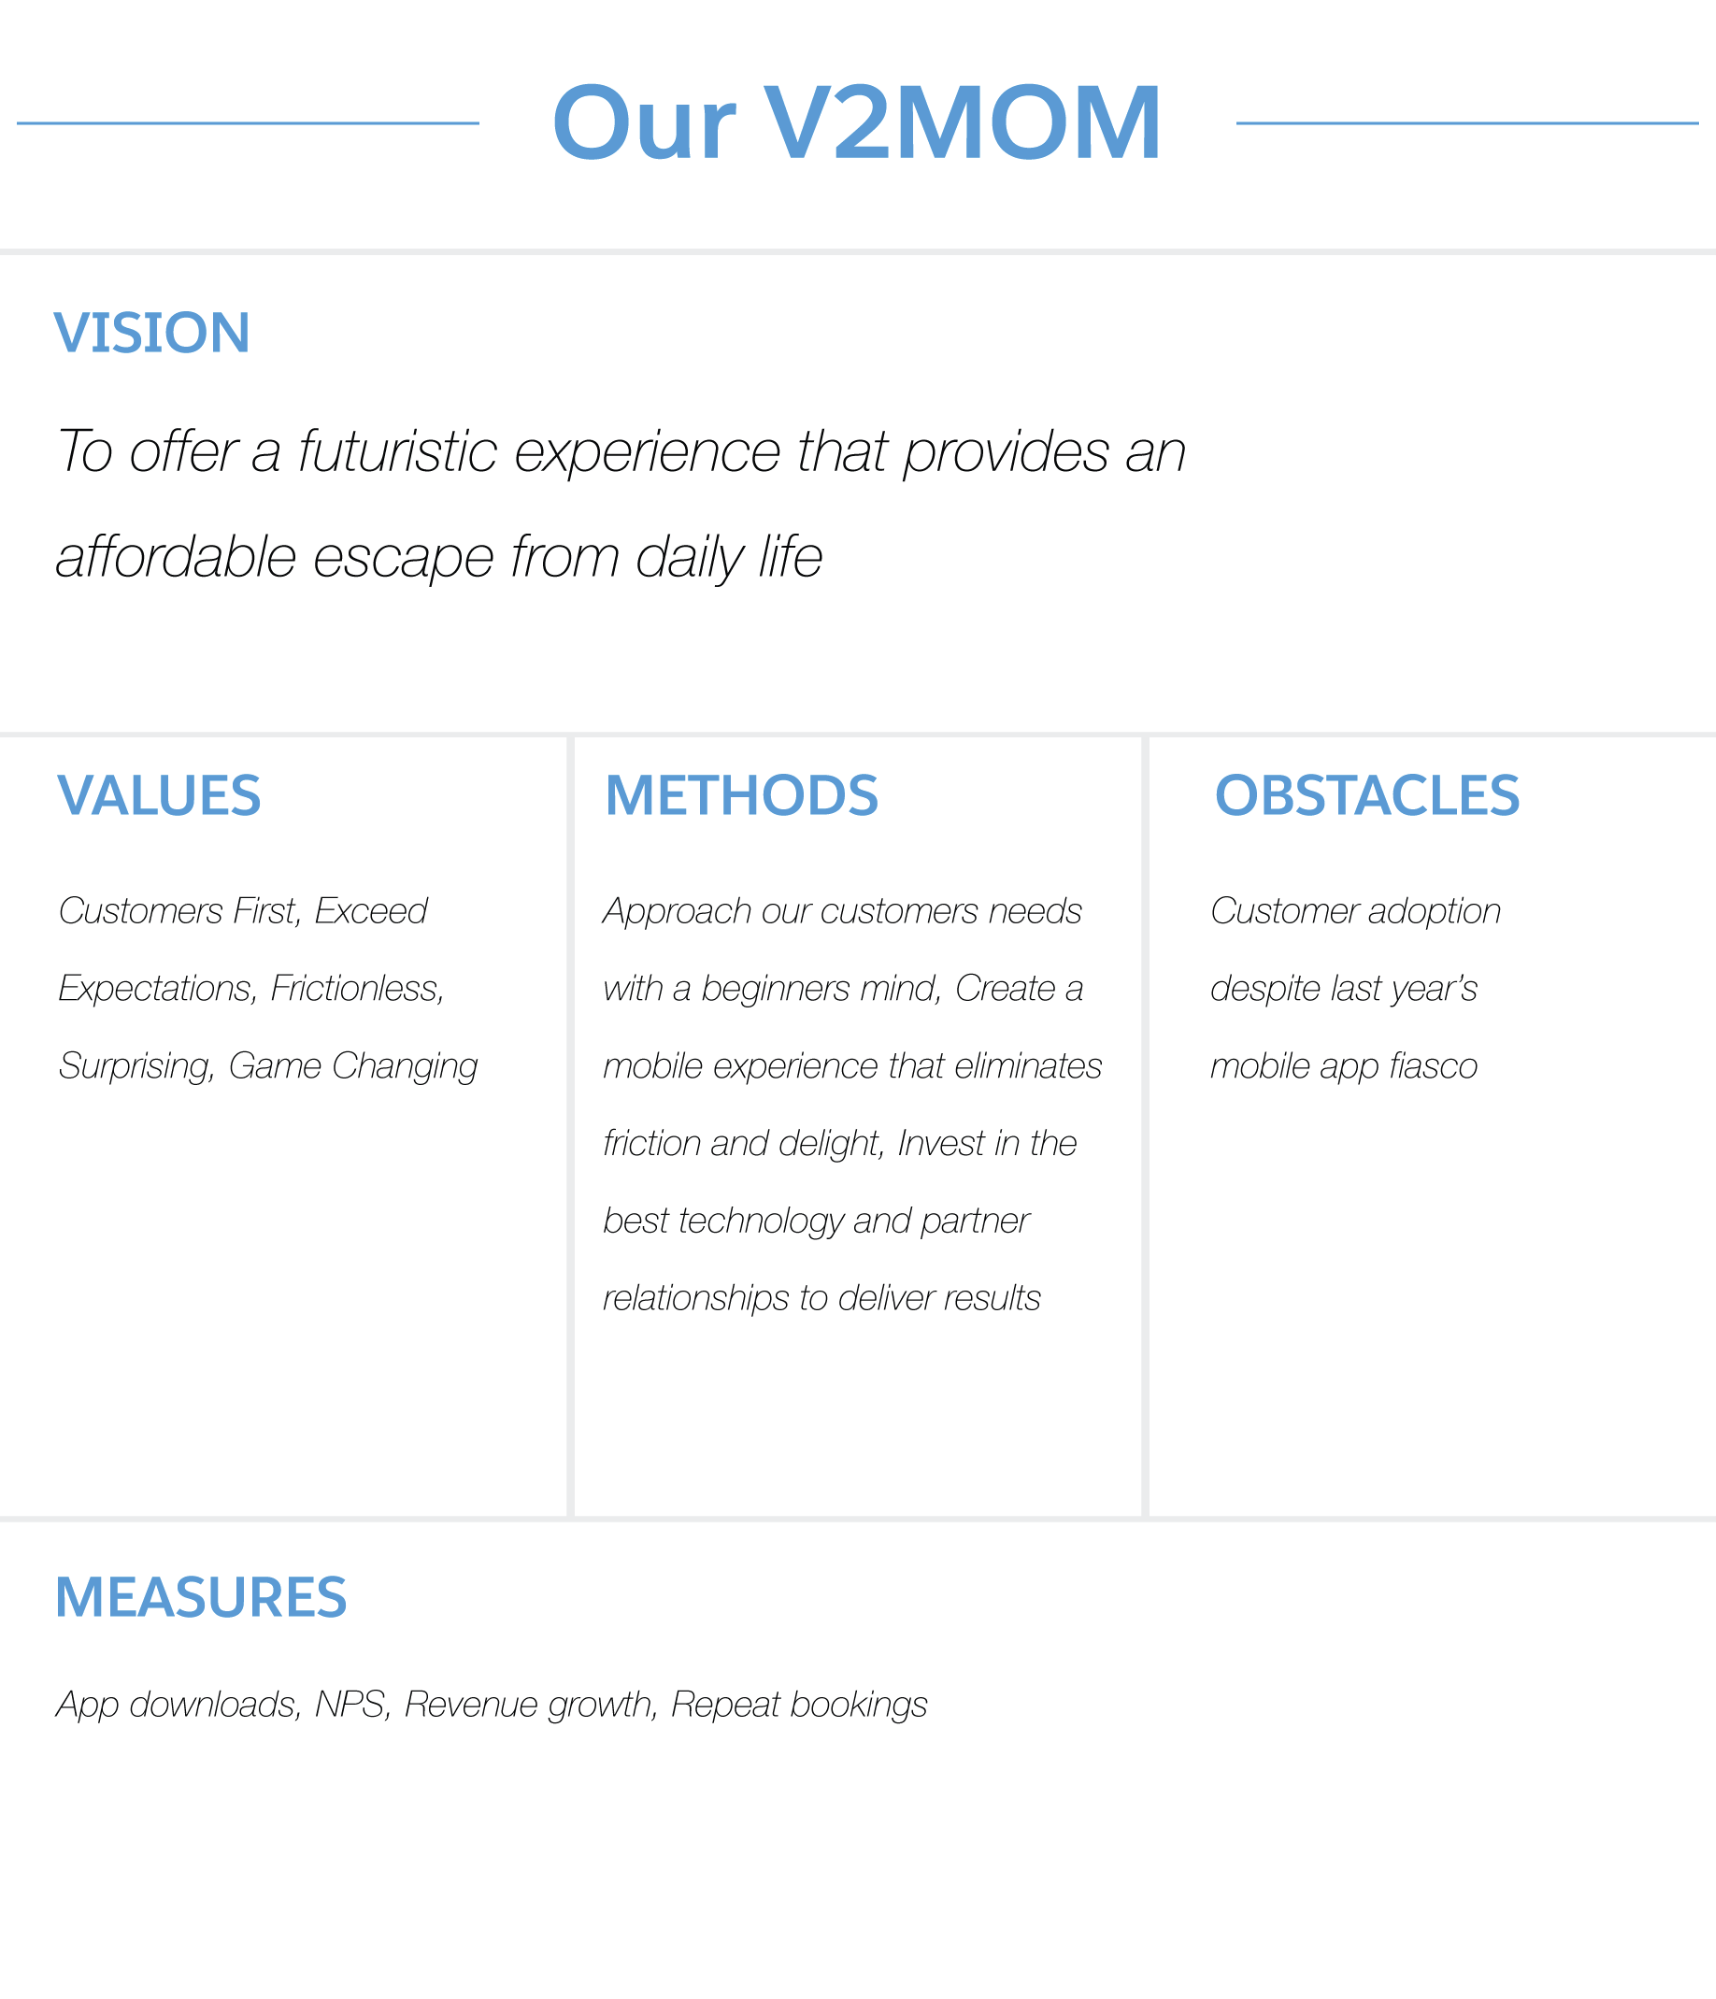 Chart Our V2MOM: Vision, Values, Methods, Obstacles, Measures